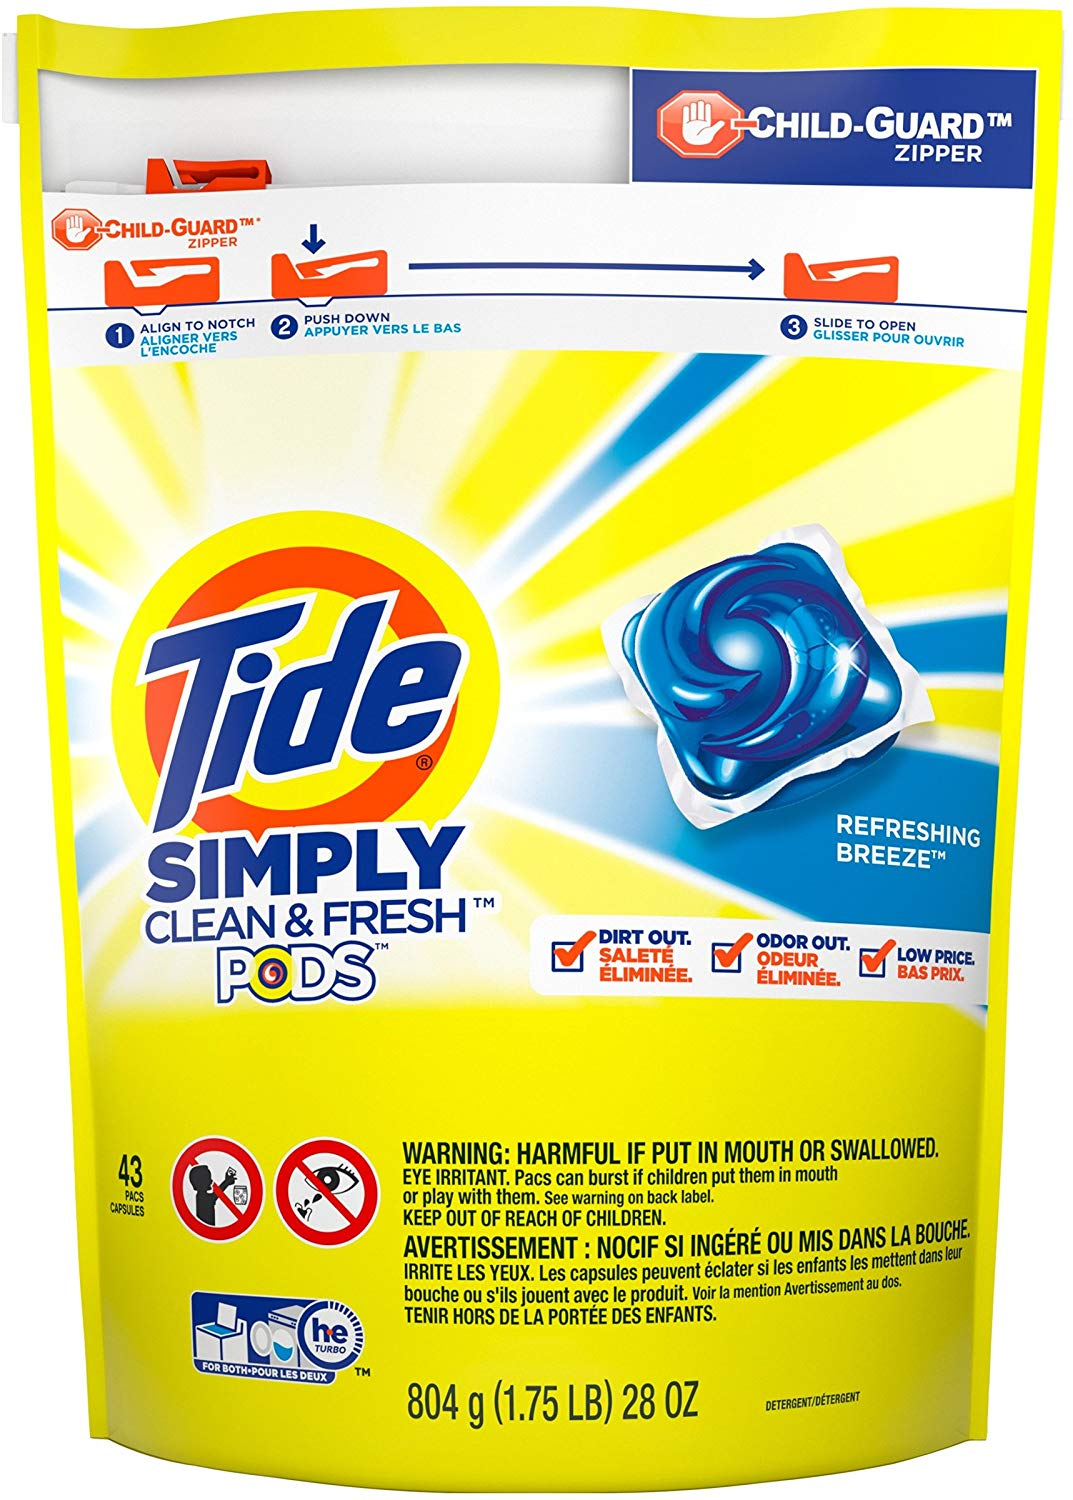 Tide Simply Clean & Fresh PODS Liquid Detergent Pacs, 43 Count only $5.04! (was $8.94)